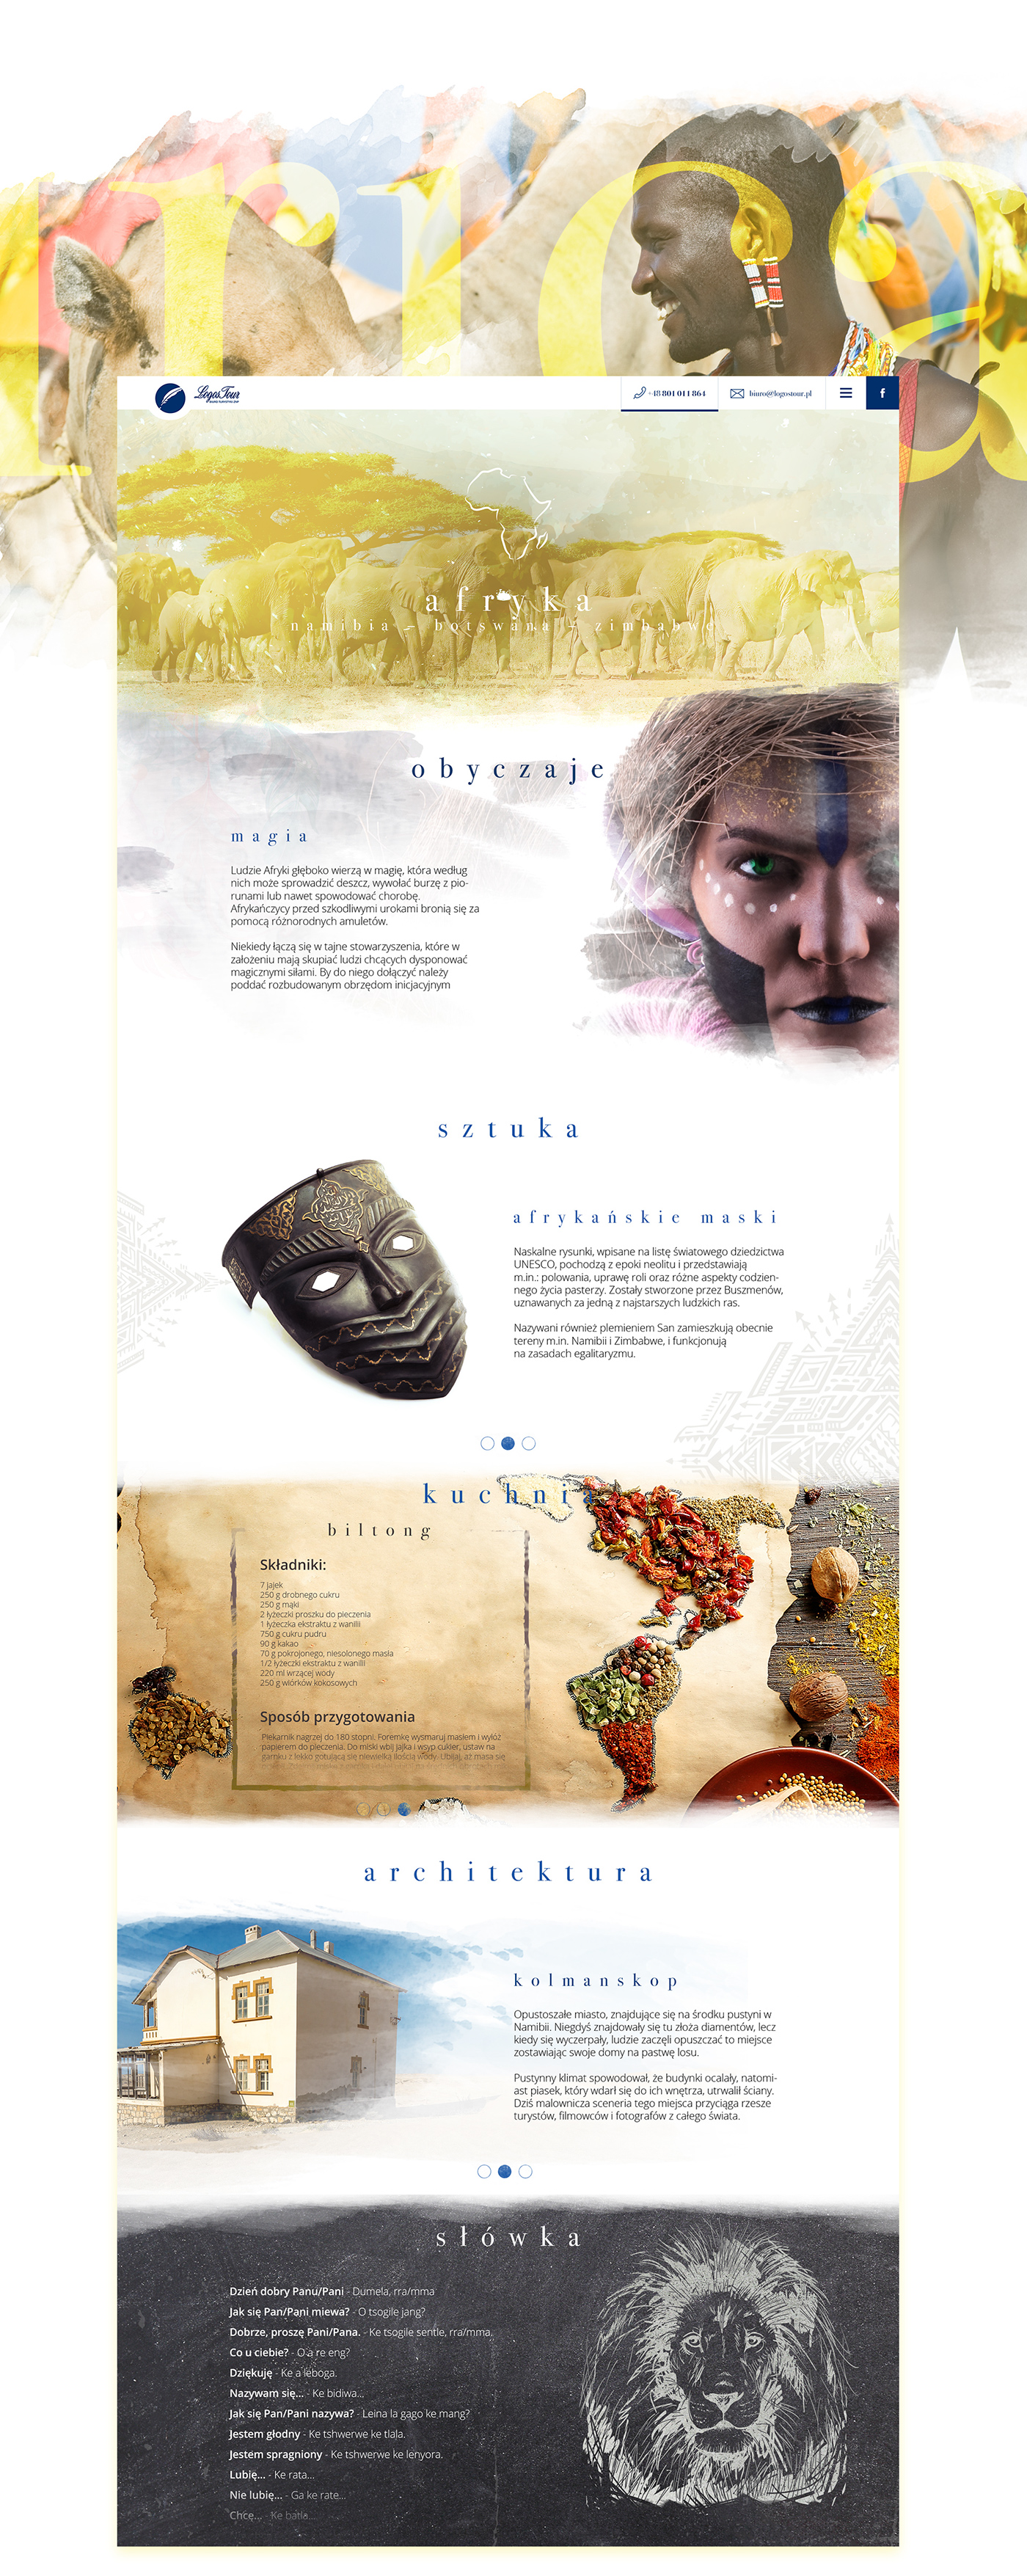 ☆Culture of the seven continents on Behance